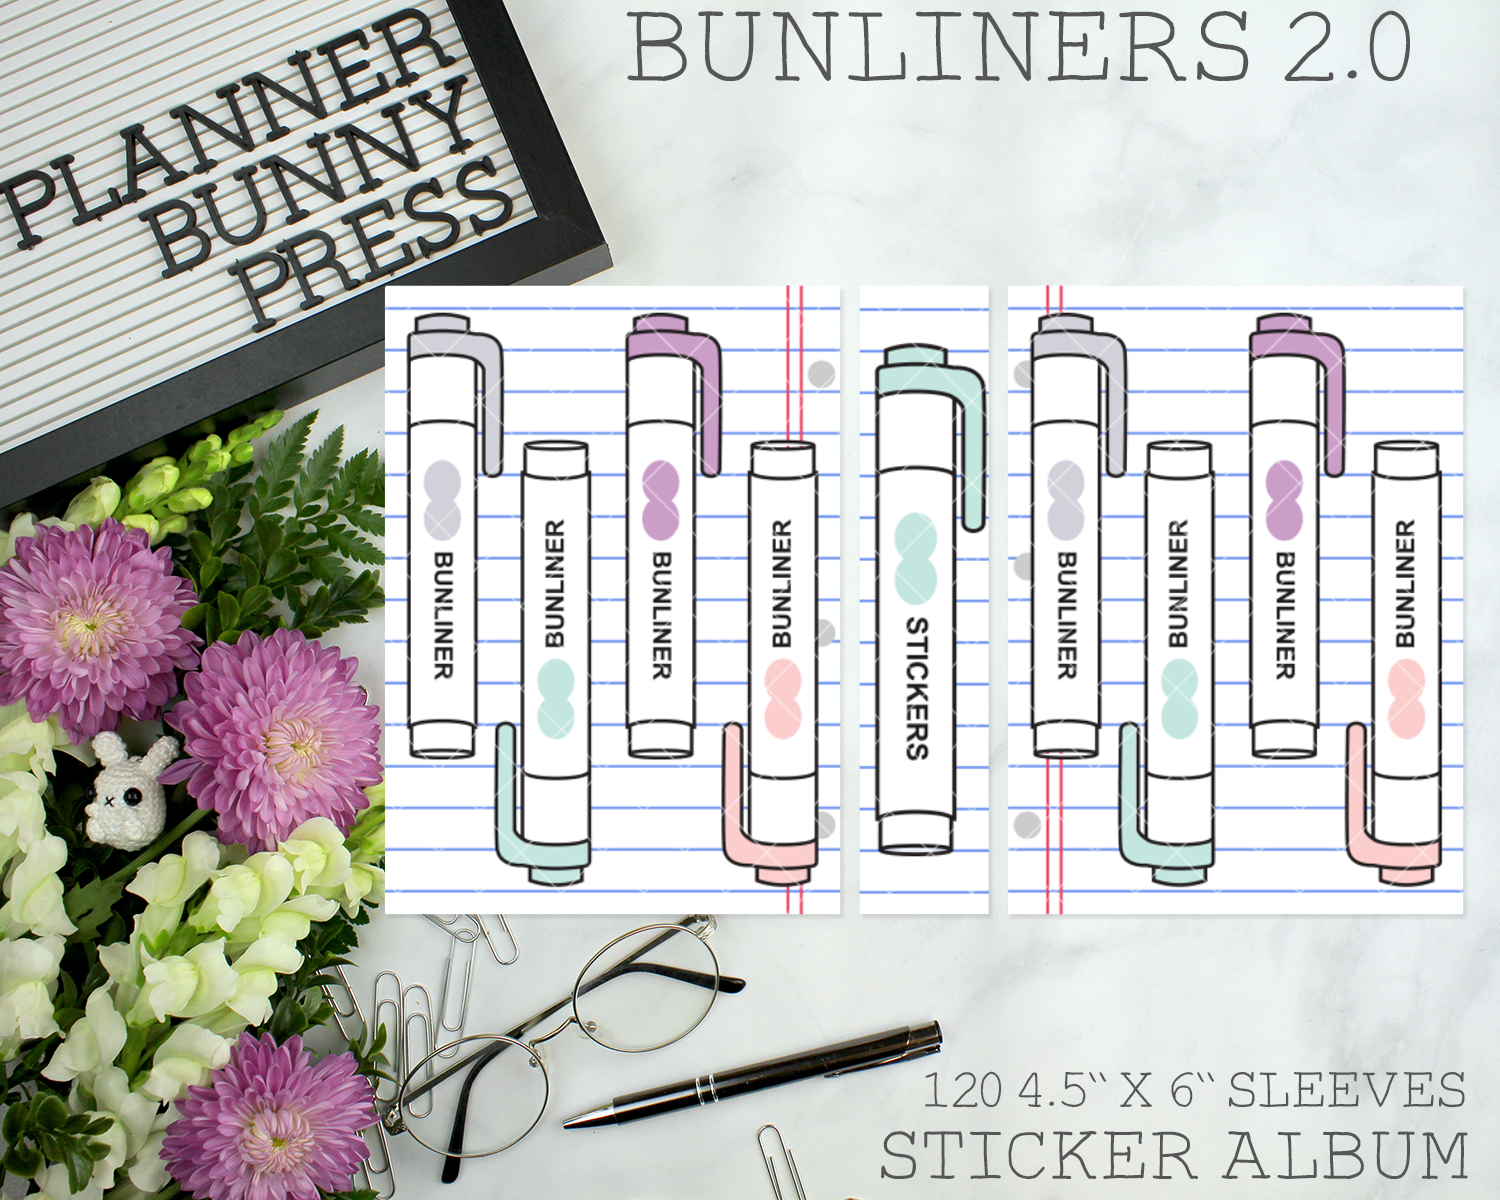 Bunliners 2.0 Sticker Album